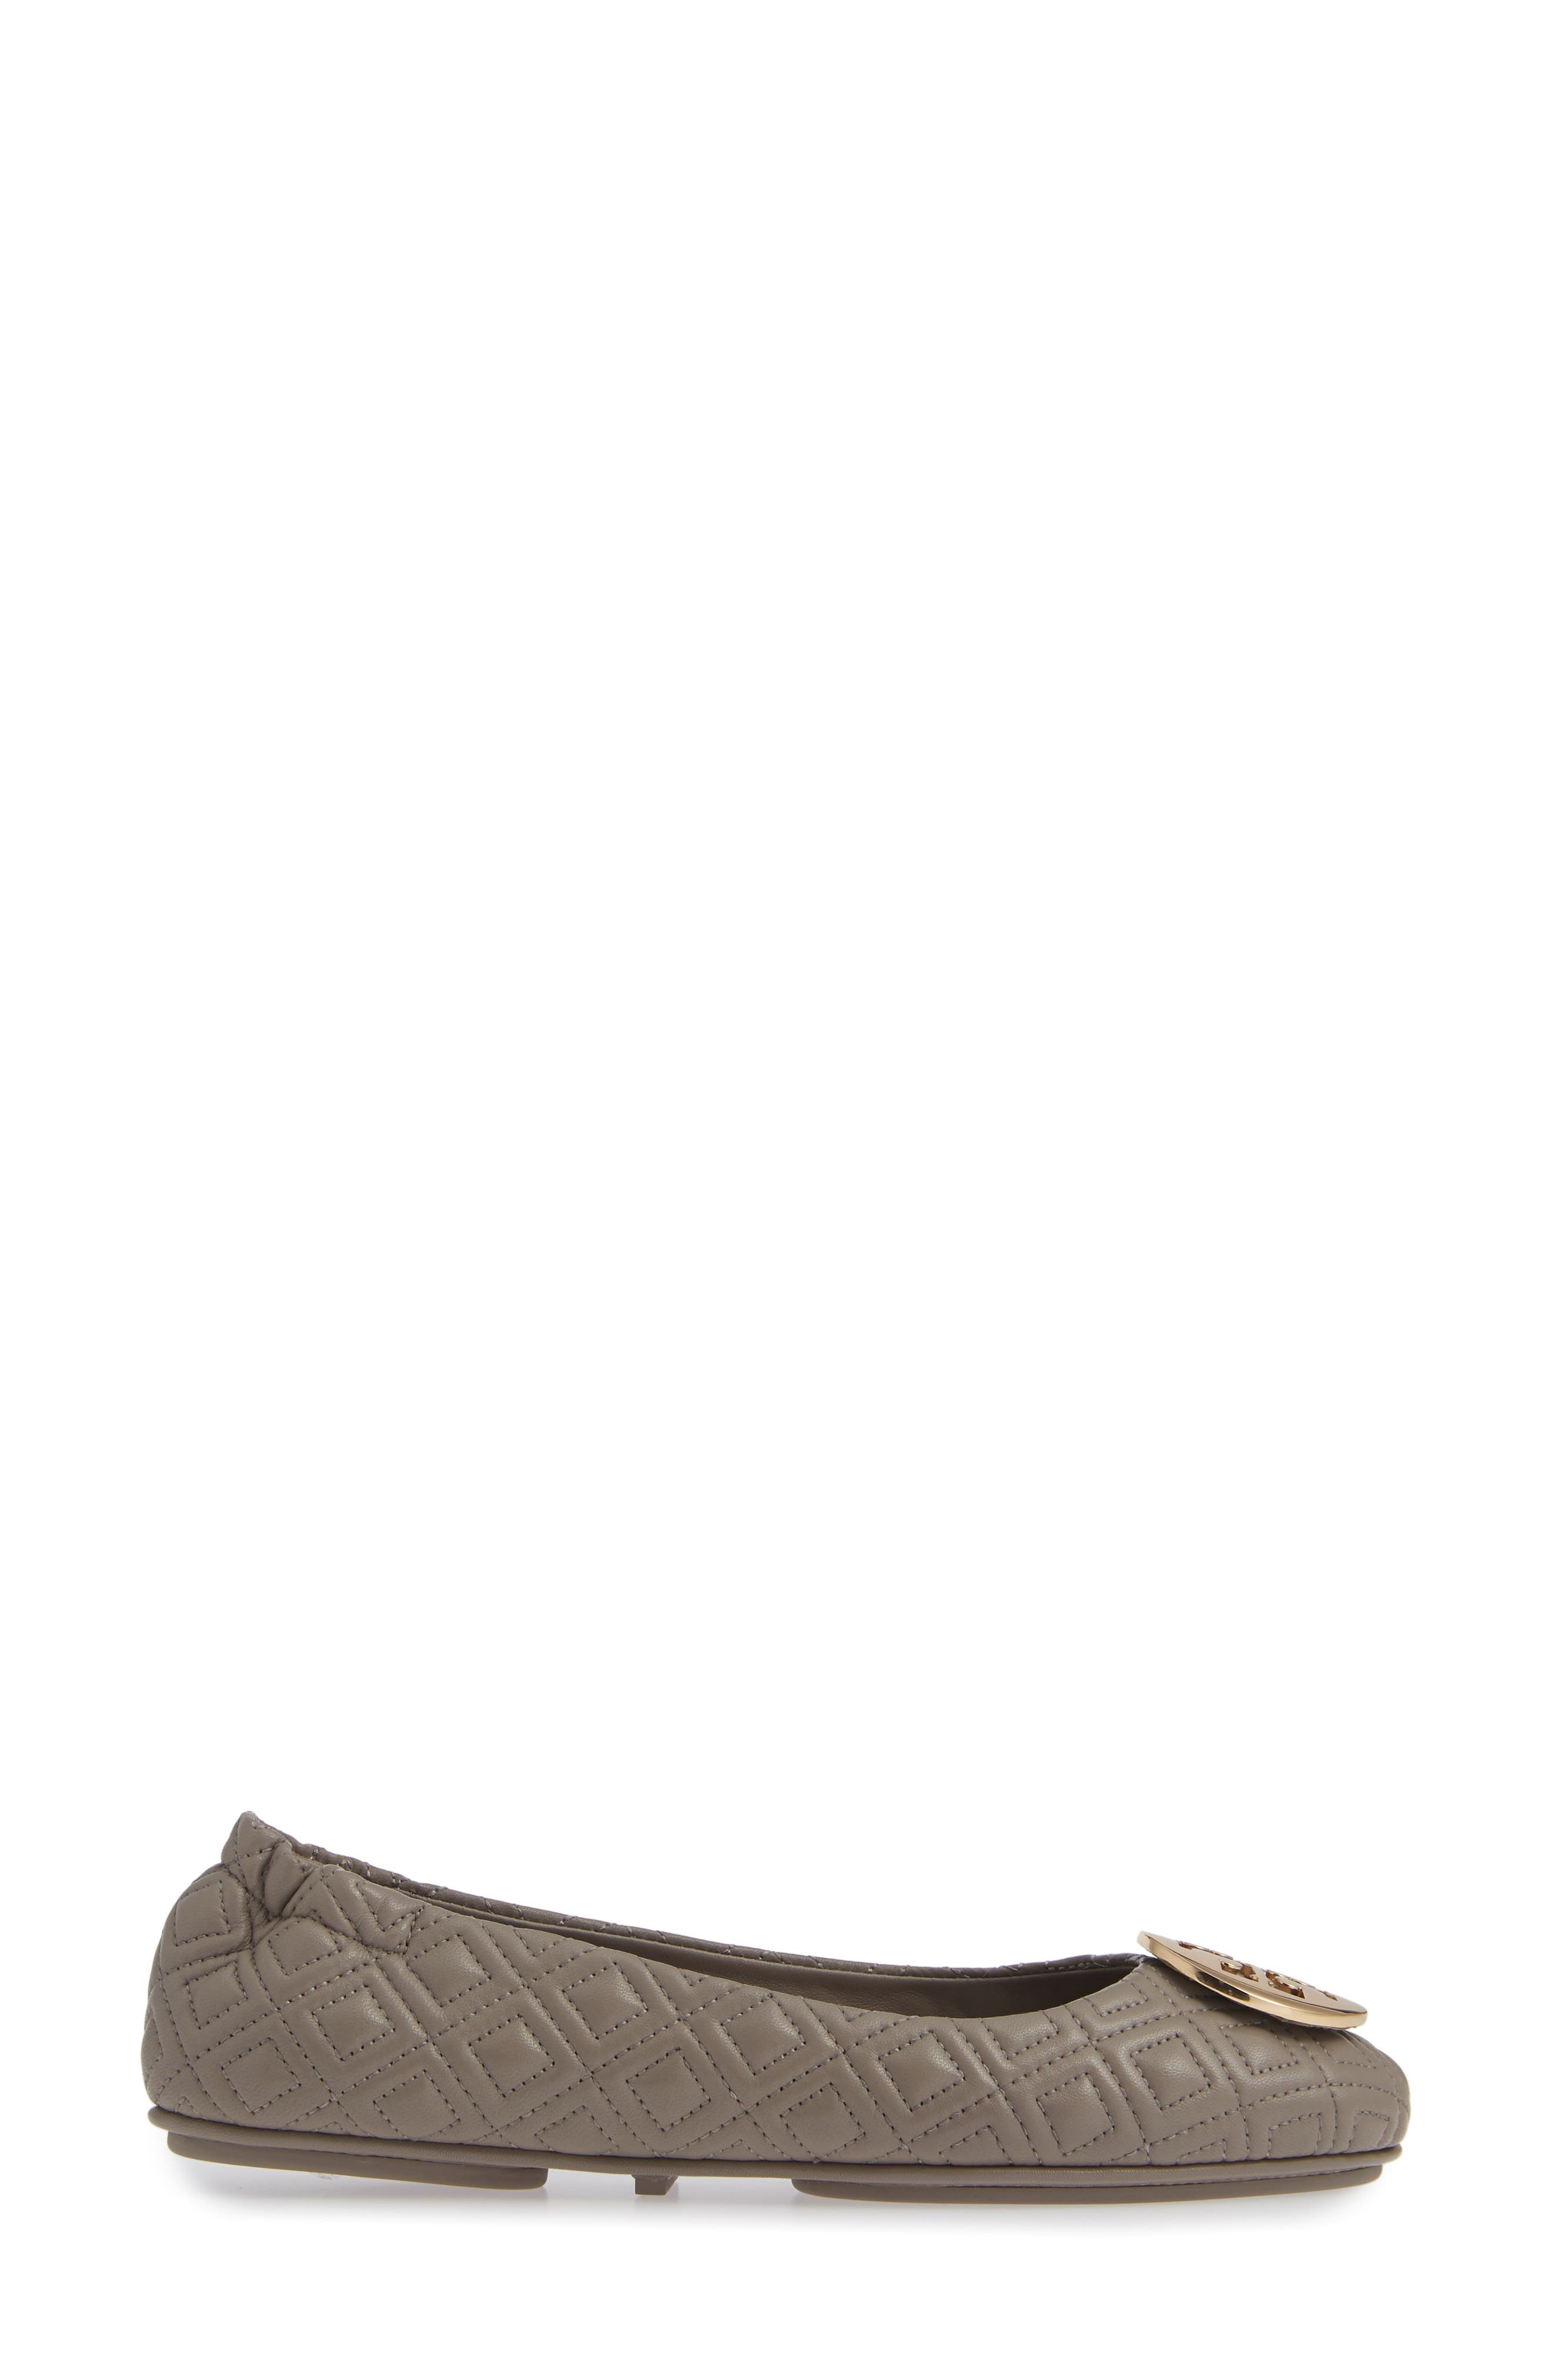 TORY BURCH, Quilted Minnie Flat, Alternate thumbnail 3, color, DUST STORM/ GOLD